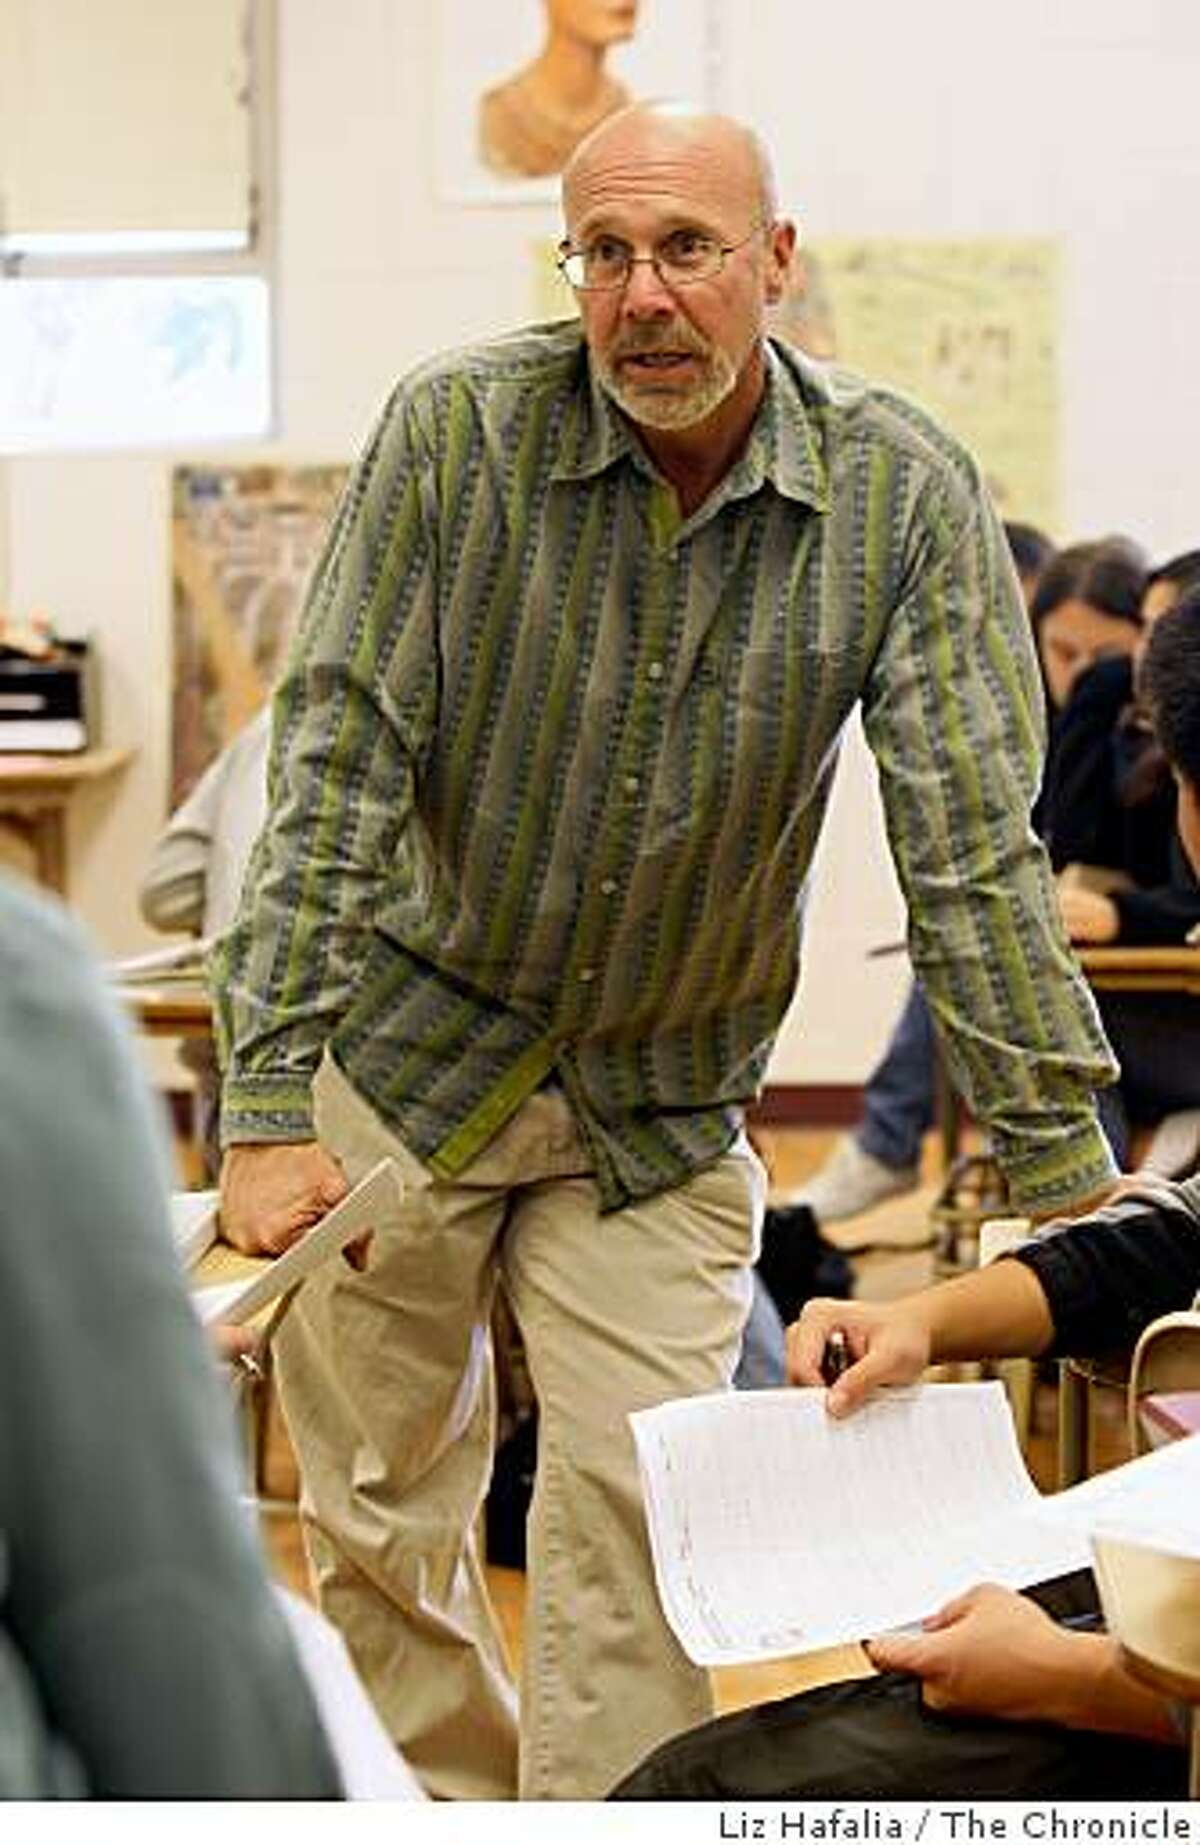 Lowell High school teacher Richard Girling instructing a senior class in American Democracy in San Francisco, Calif., on Tuesday, September 9, 2008. Four years ago he was riding his bicycle home from work near Lake Merced when he was run over by a Municipal Railway bus.